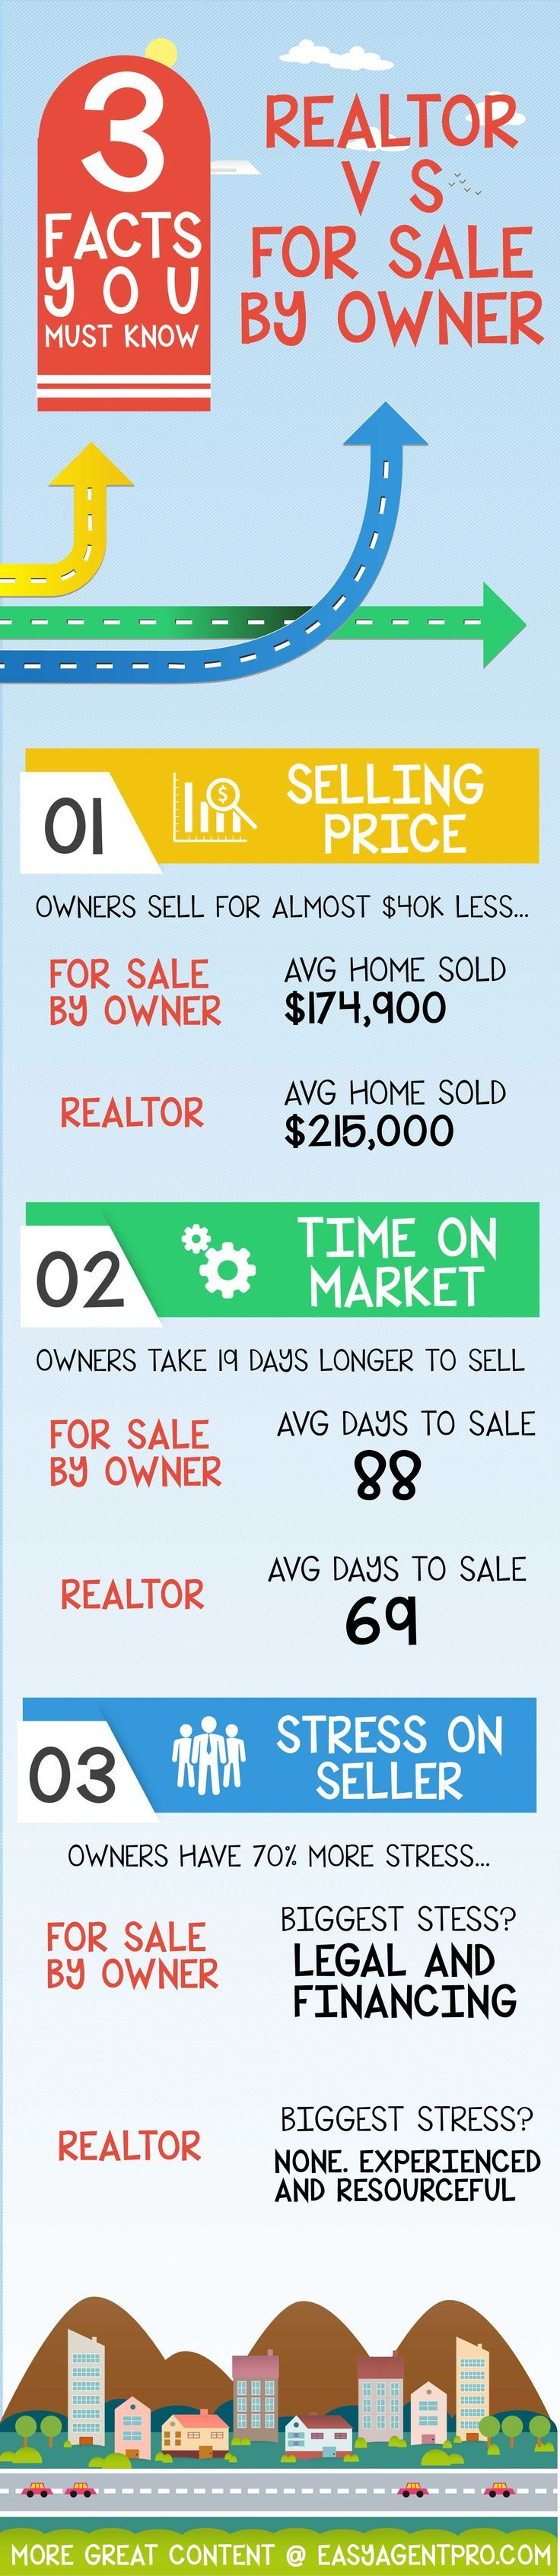 best images about for by owner home flyer does a real estate pro help this infographic shows it all click to share your network today